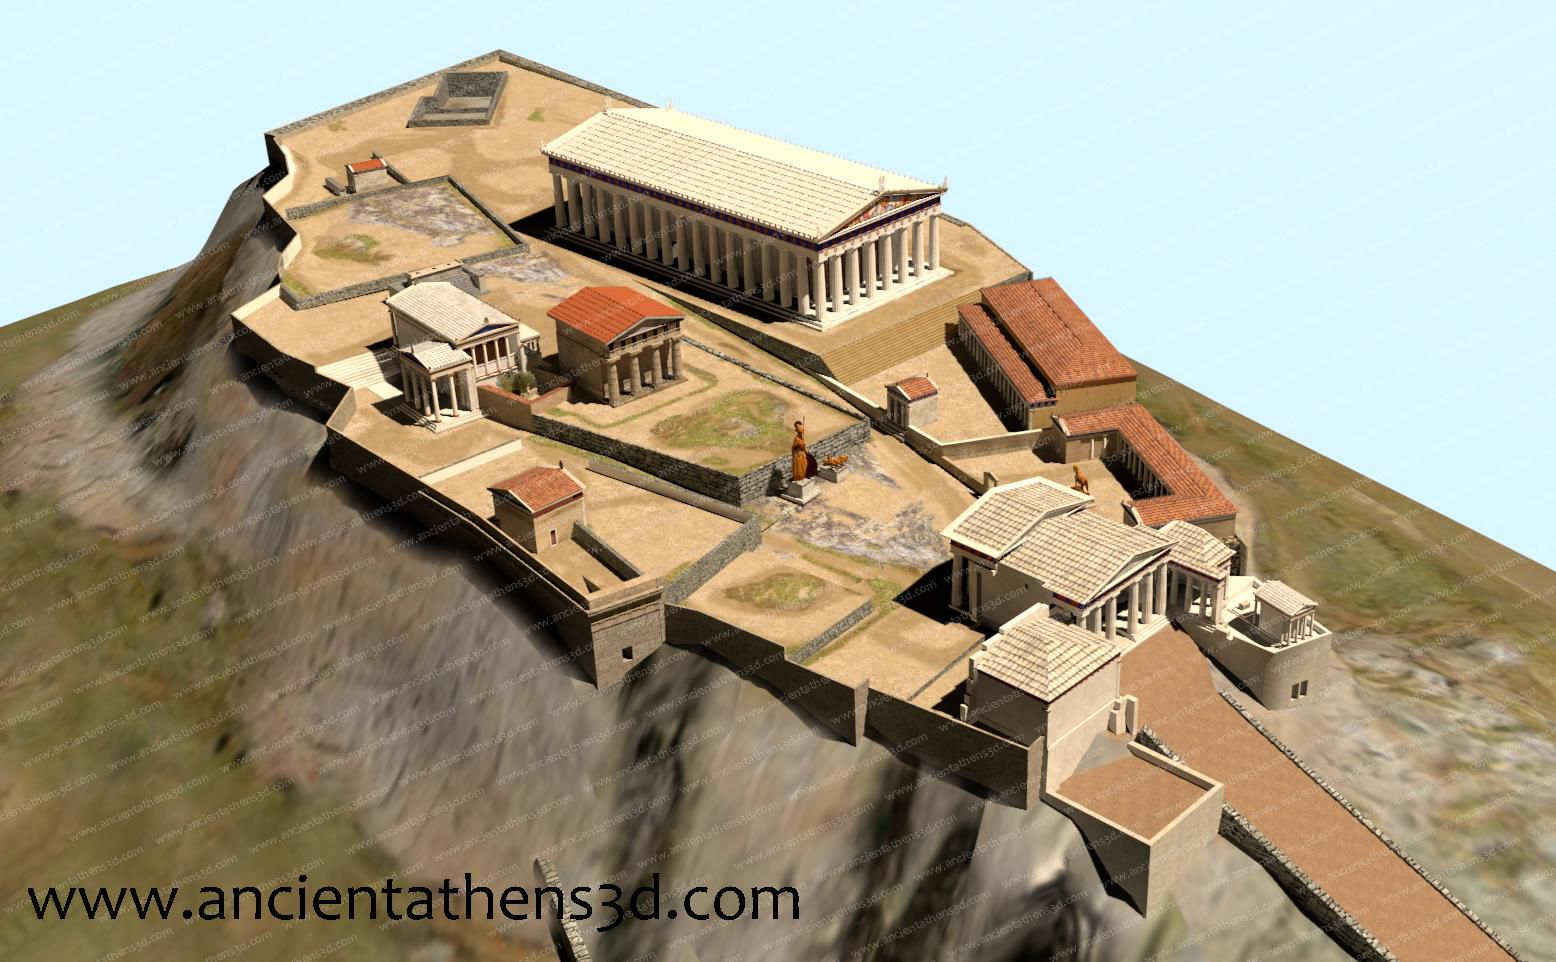 These 3-D Models Offer a Digital Glimpse Into 3,000 Years of Athens' History